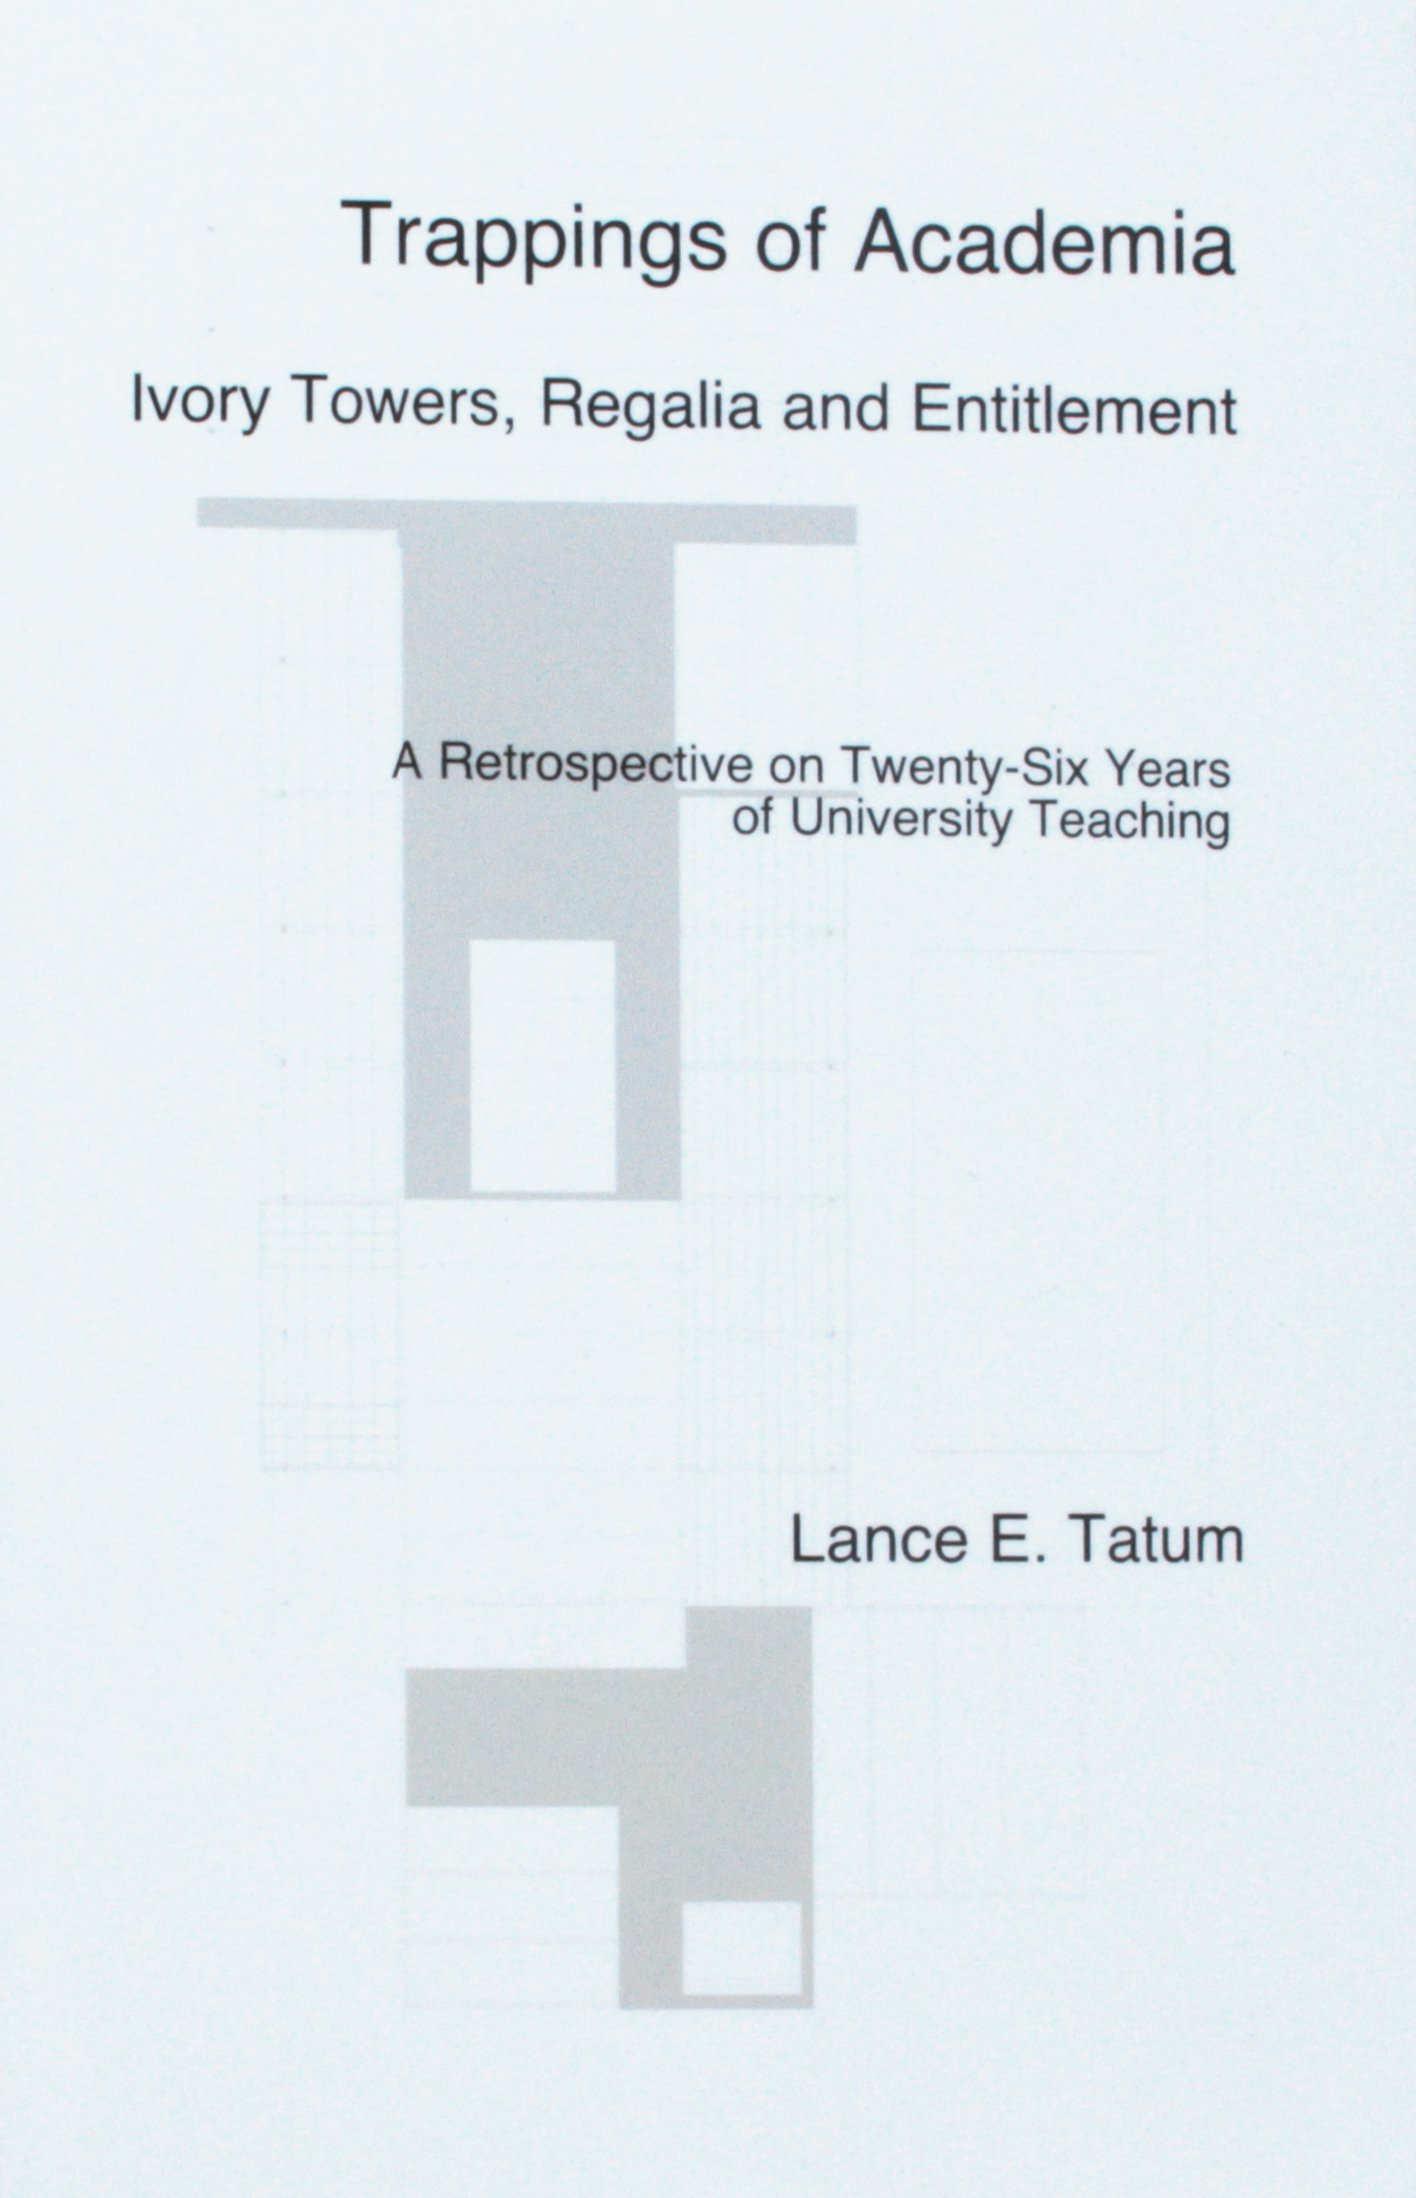 Trappings of Academia, Ivory Towers, Regalia and Entitlement: A Retrospective on Twenty-Six Years of University Teaching pdf